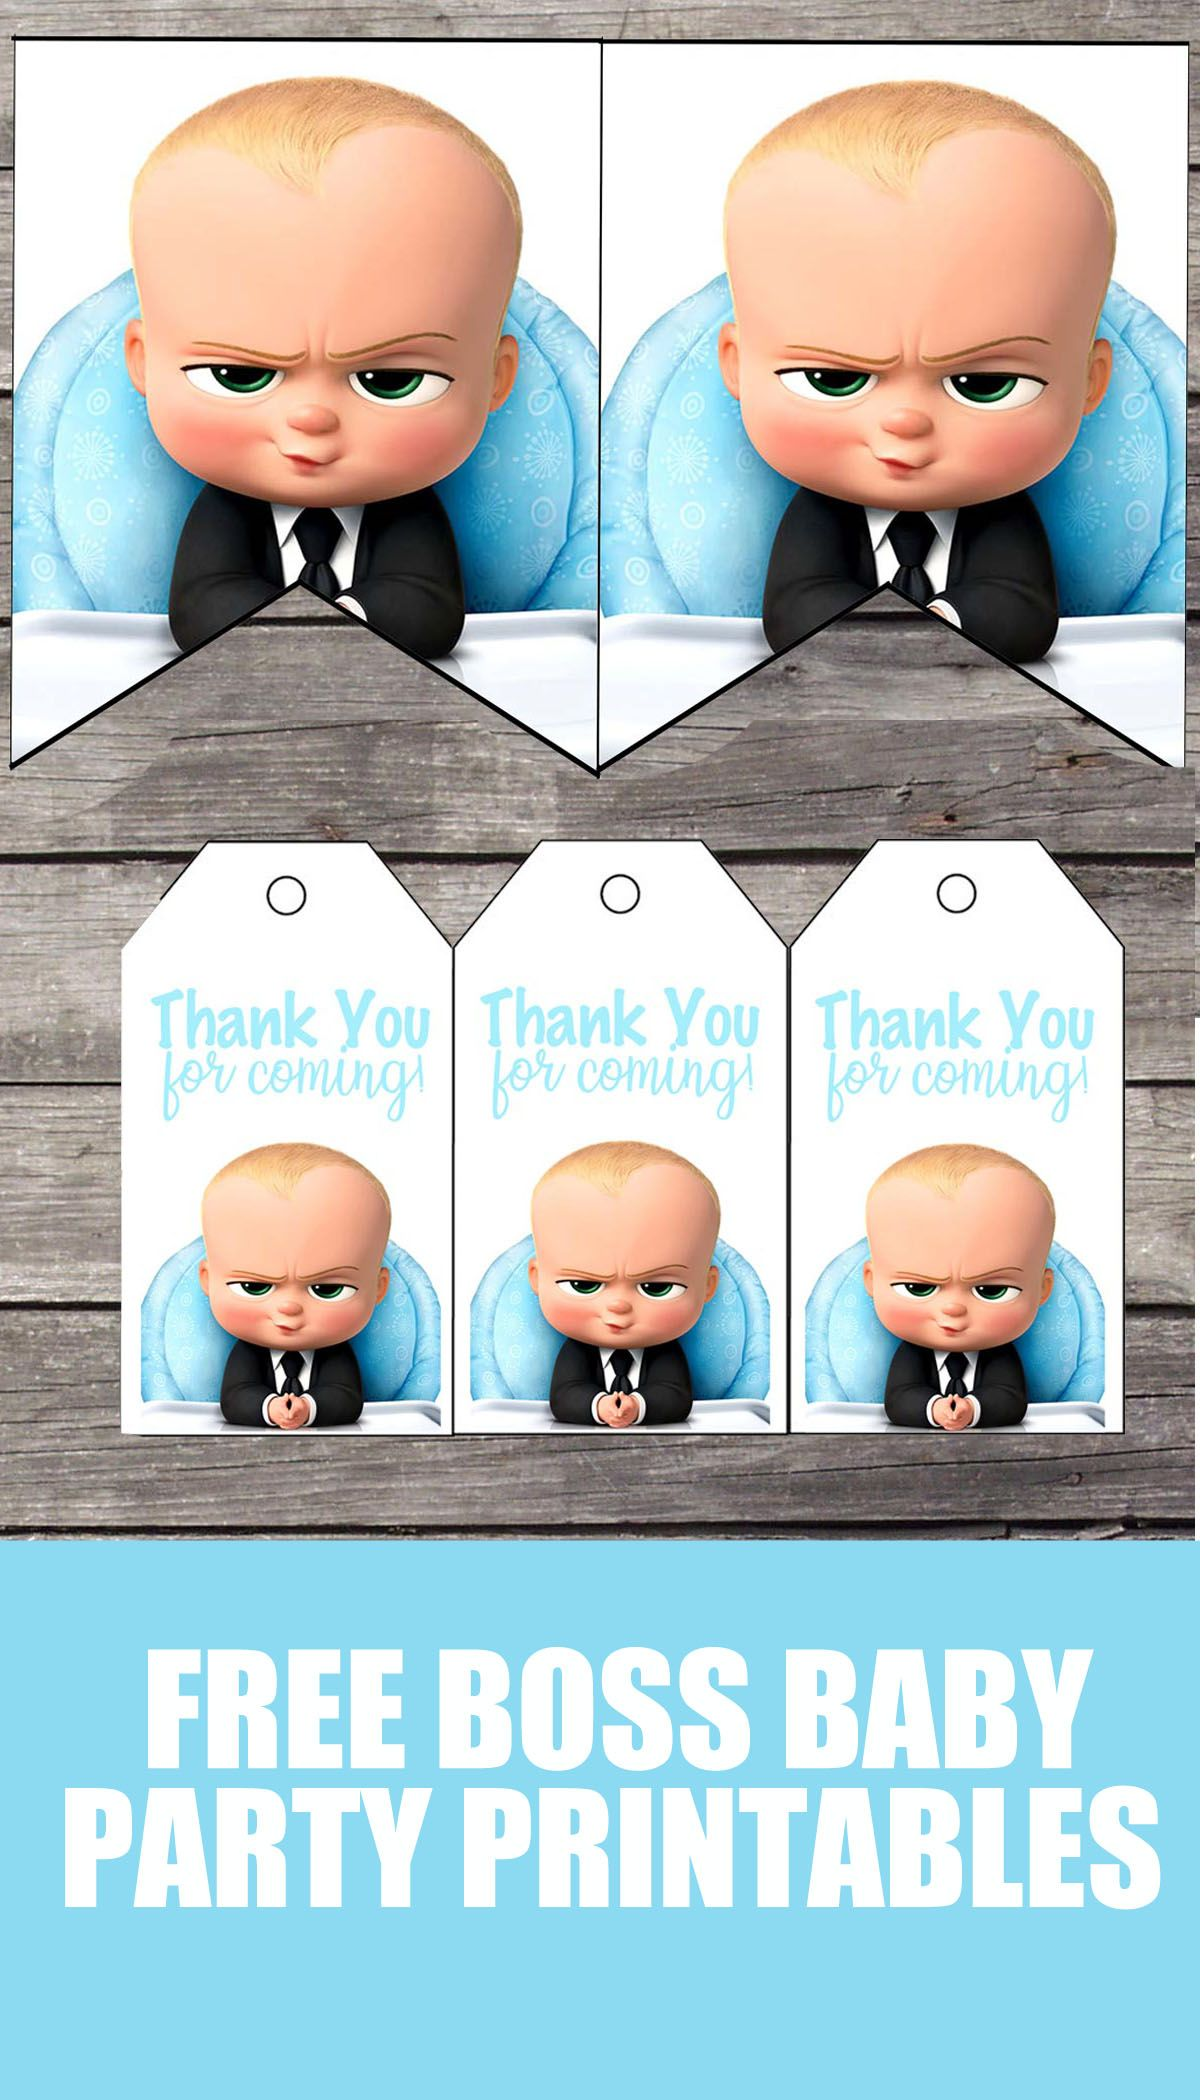 image relating to Boss Baby Printable named Free of charge Manager Kid Birthday Occasion Printable Data files Banner